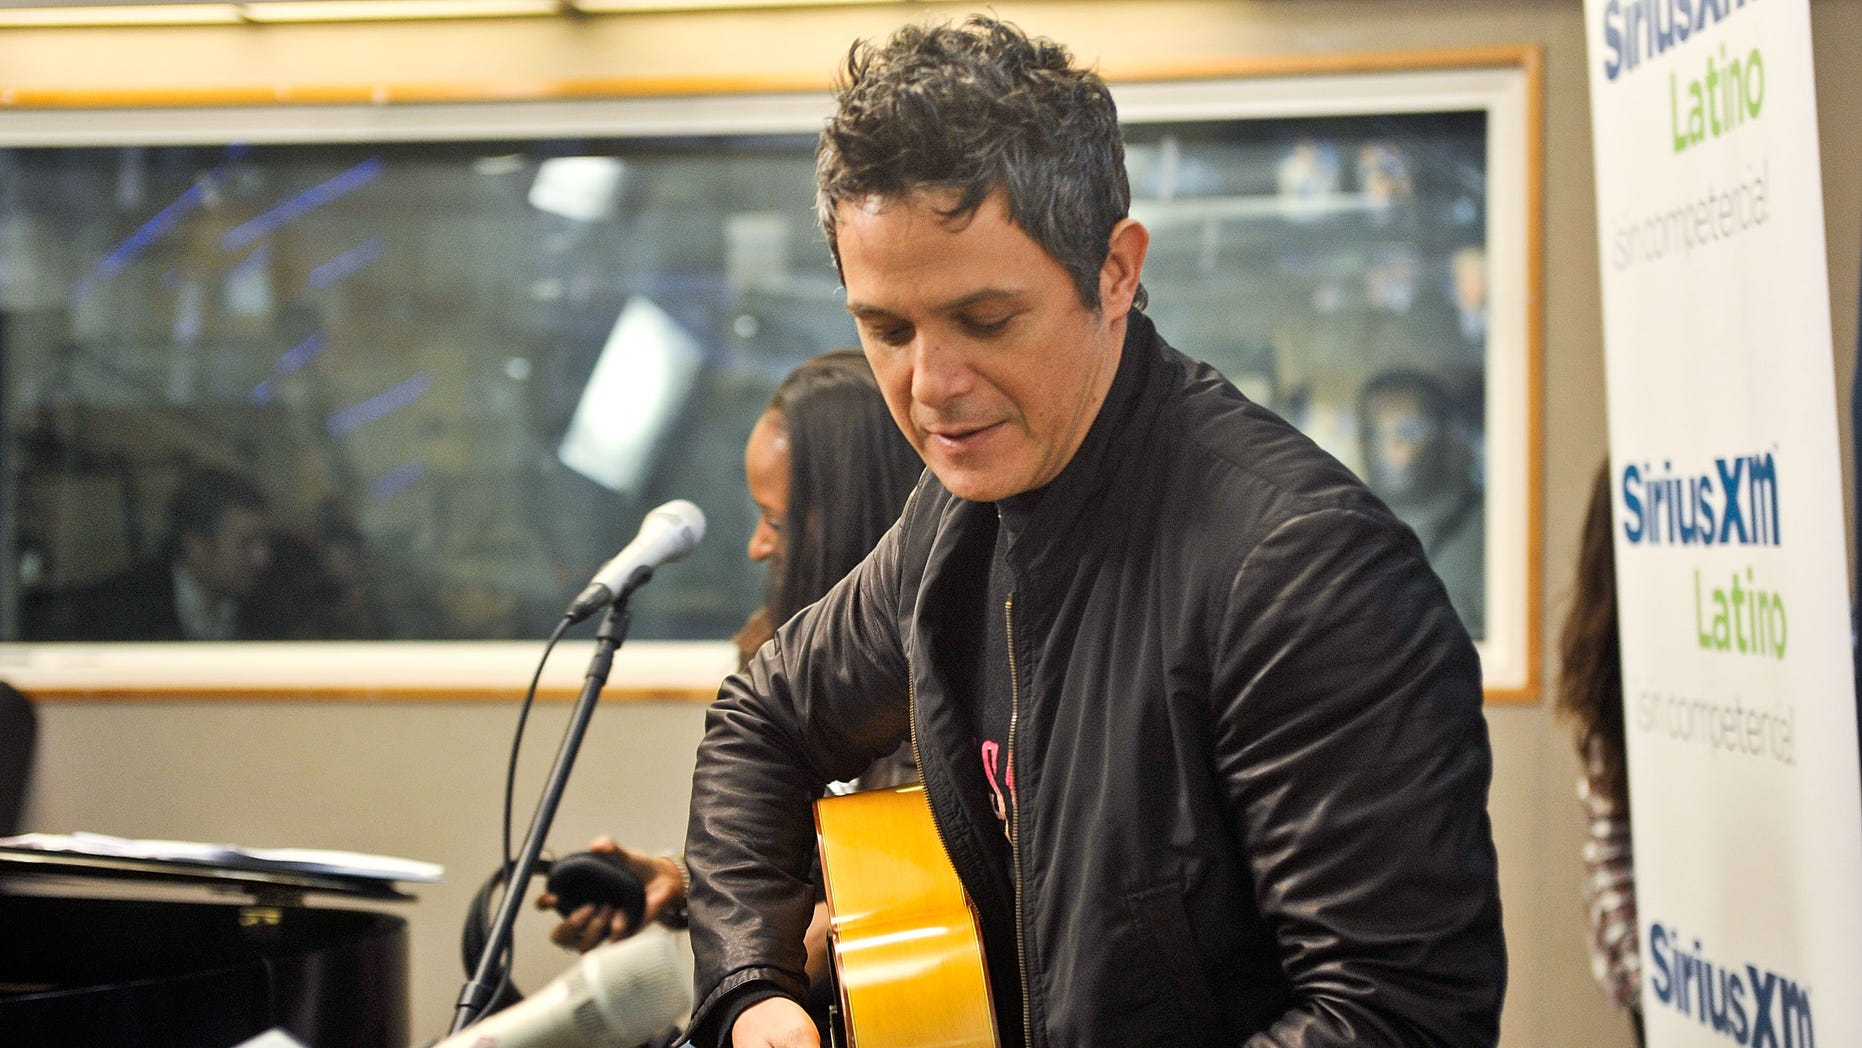 """NEW YORK, NY - MAY 03:  Spanish singer/songwriter Alejandro Sanz visits the SiriusXM studios for """"SiriusXM's ICONOS"""" on May 3, 2013 in New York City. (Photo by Daniel Zuchnik/Getty Images)"""